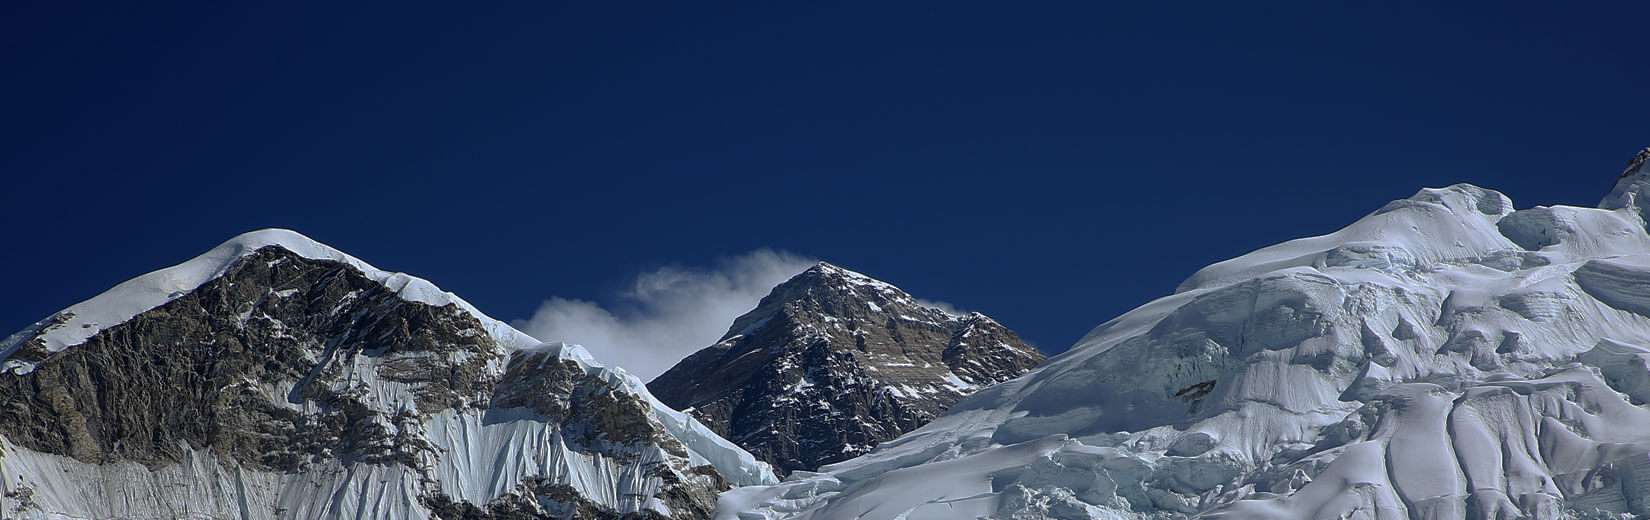 New height of Everest - 8848.86 meters